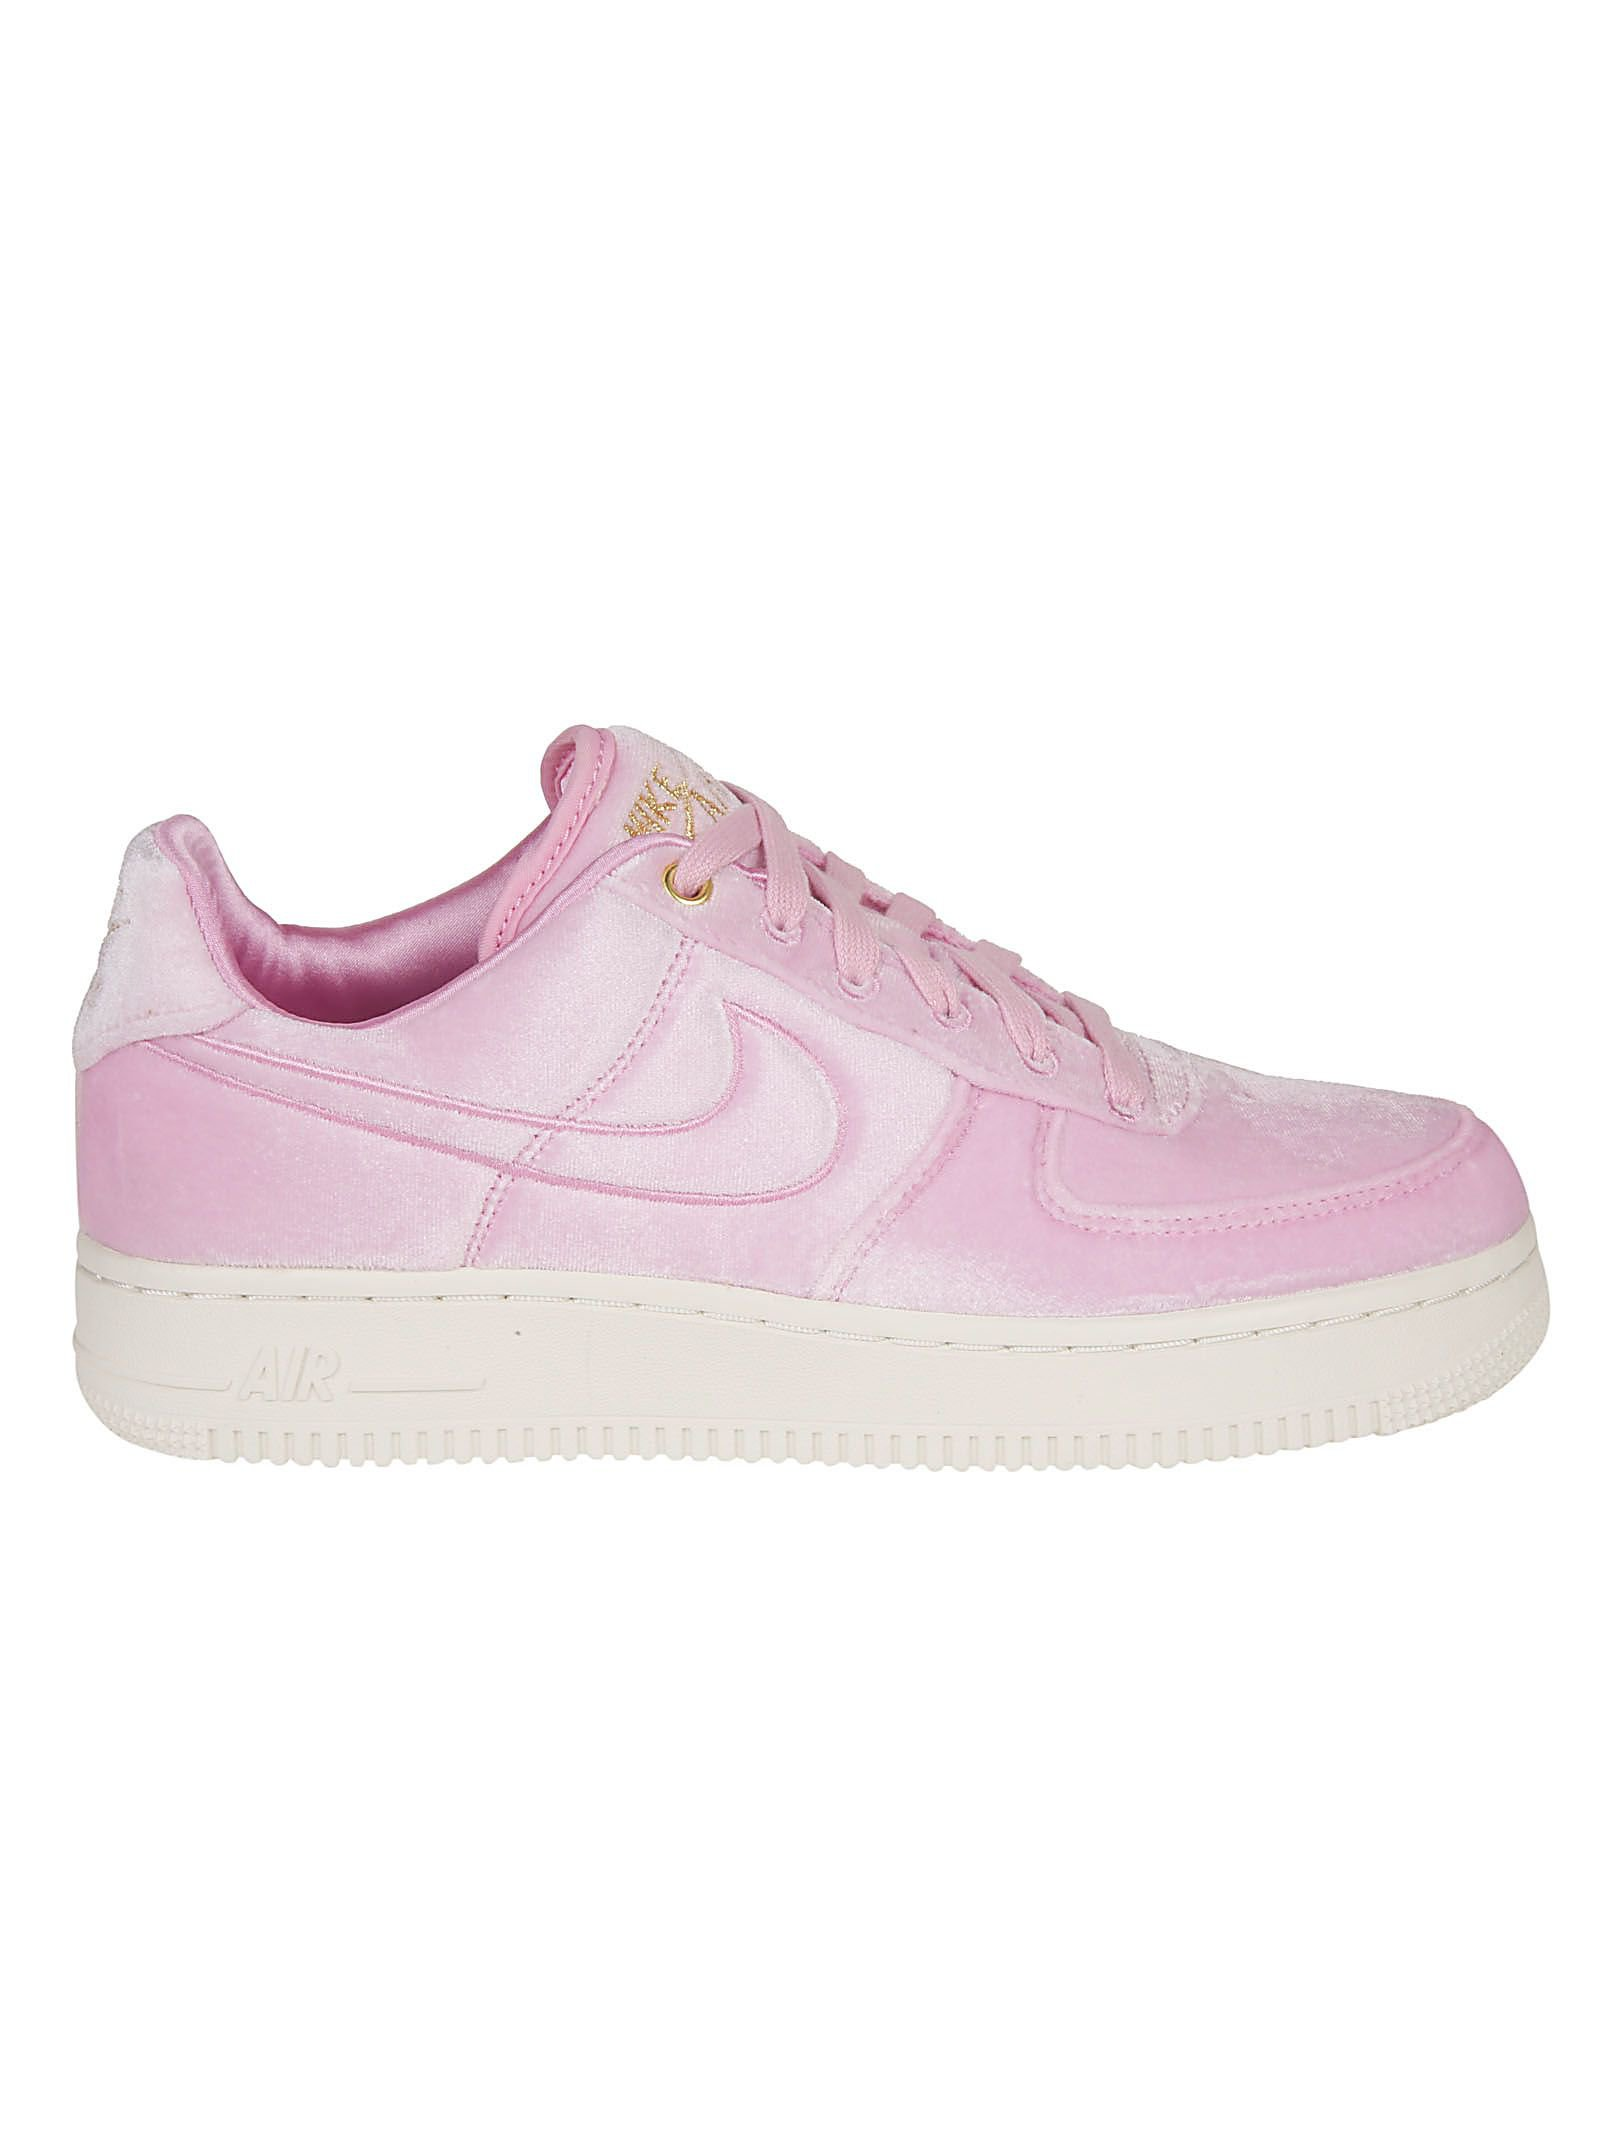 Nike Air Force 1 07 Premium 3 Sneakers